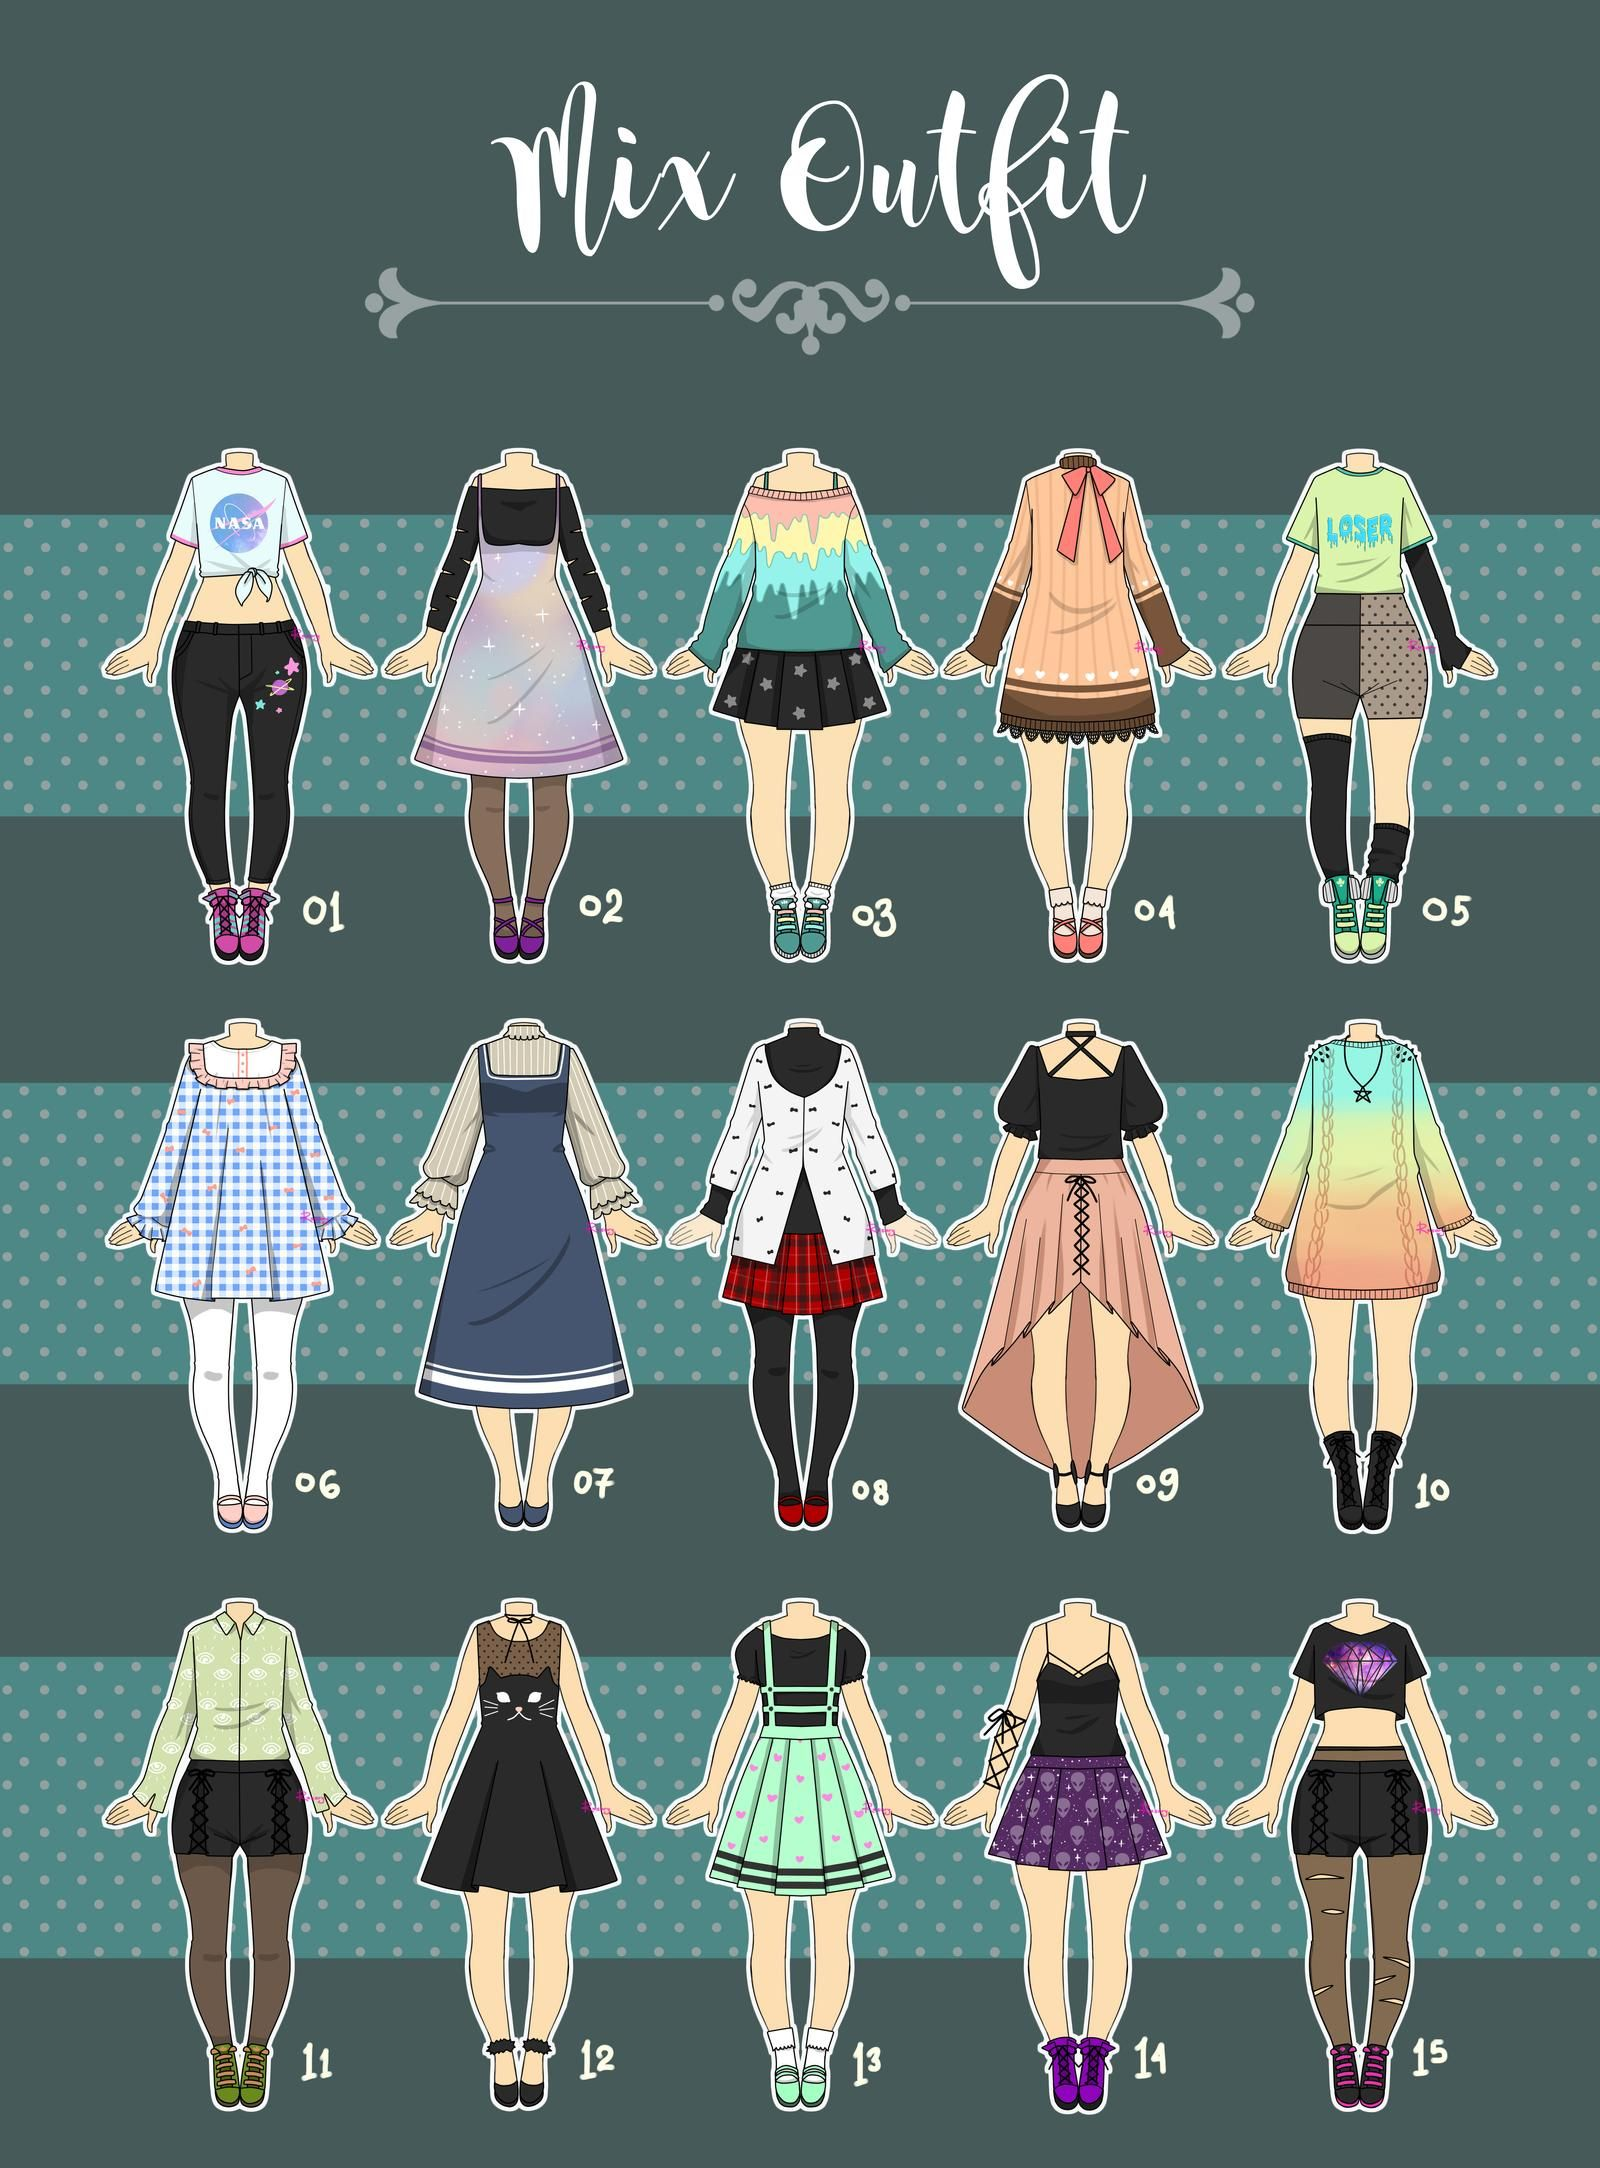 Closed Casual Outfit Adopts 07 By Rosariy On Deviantart Drawing Anime Clothes Fashion Design Drawings Anime Outfits